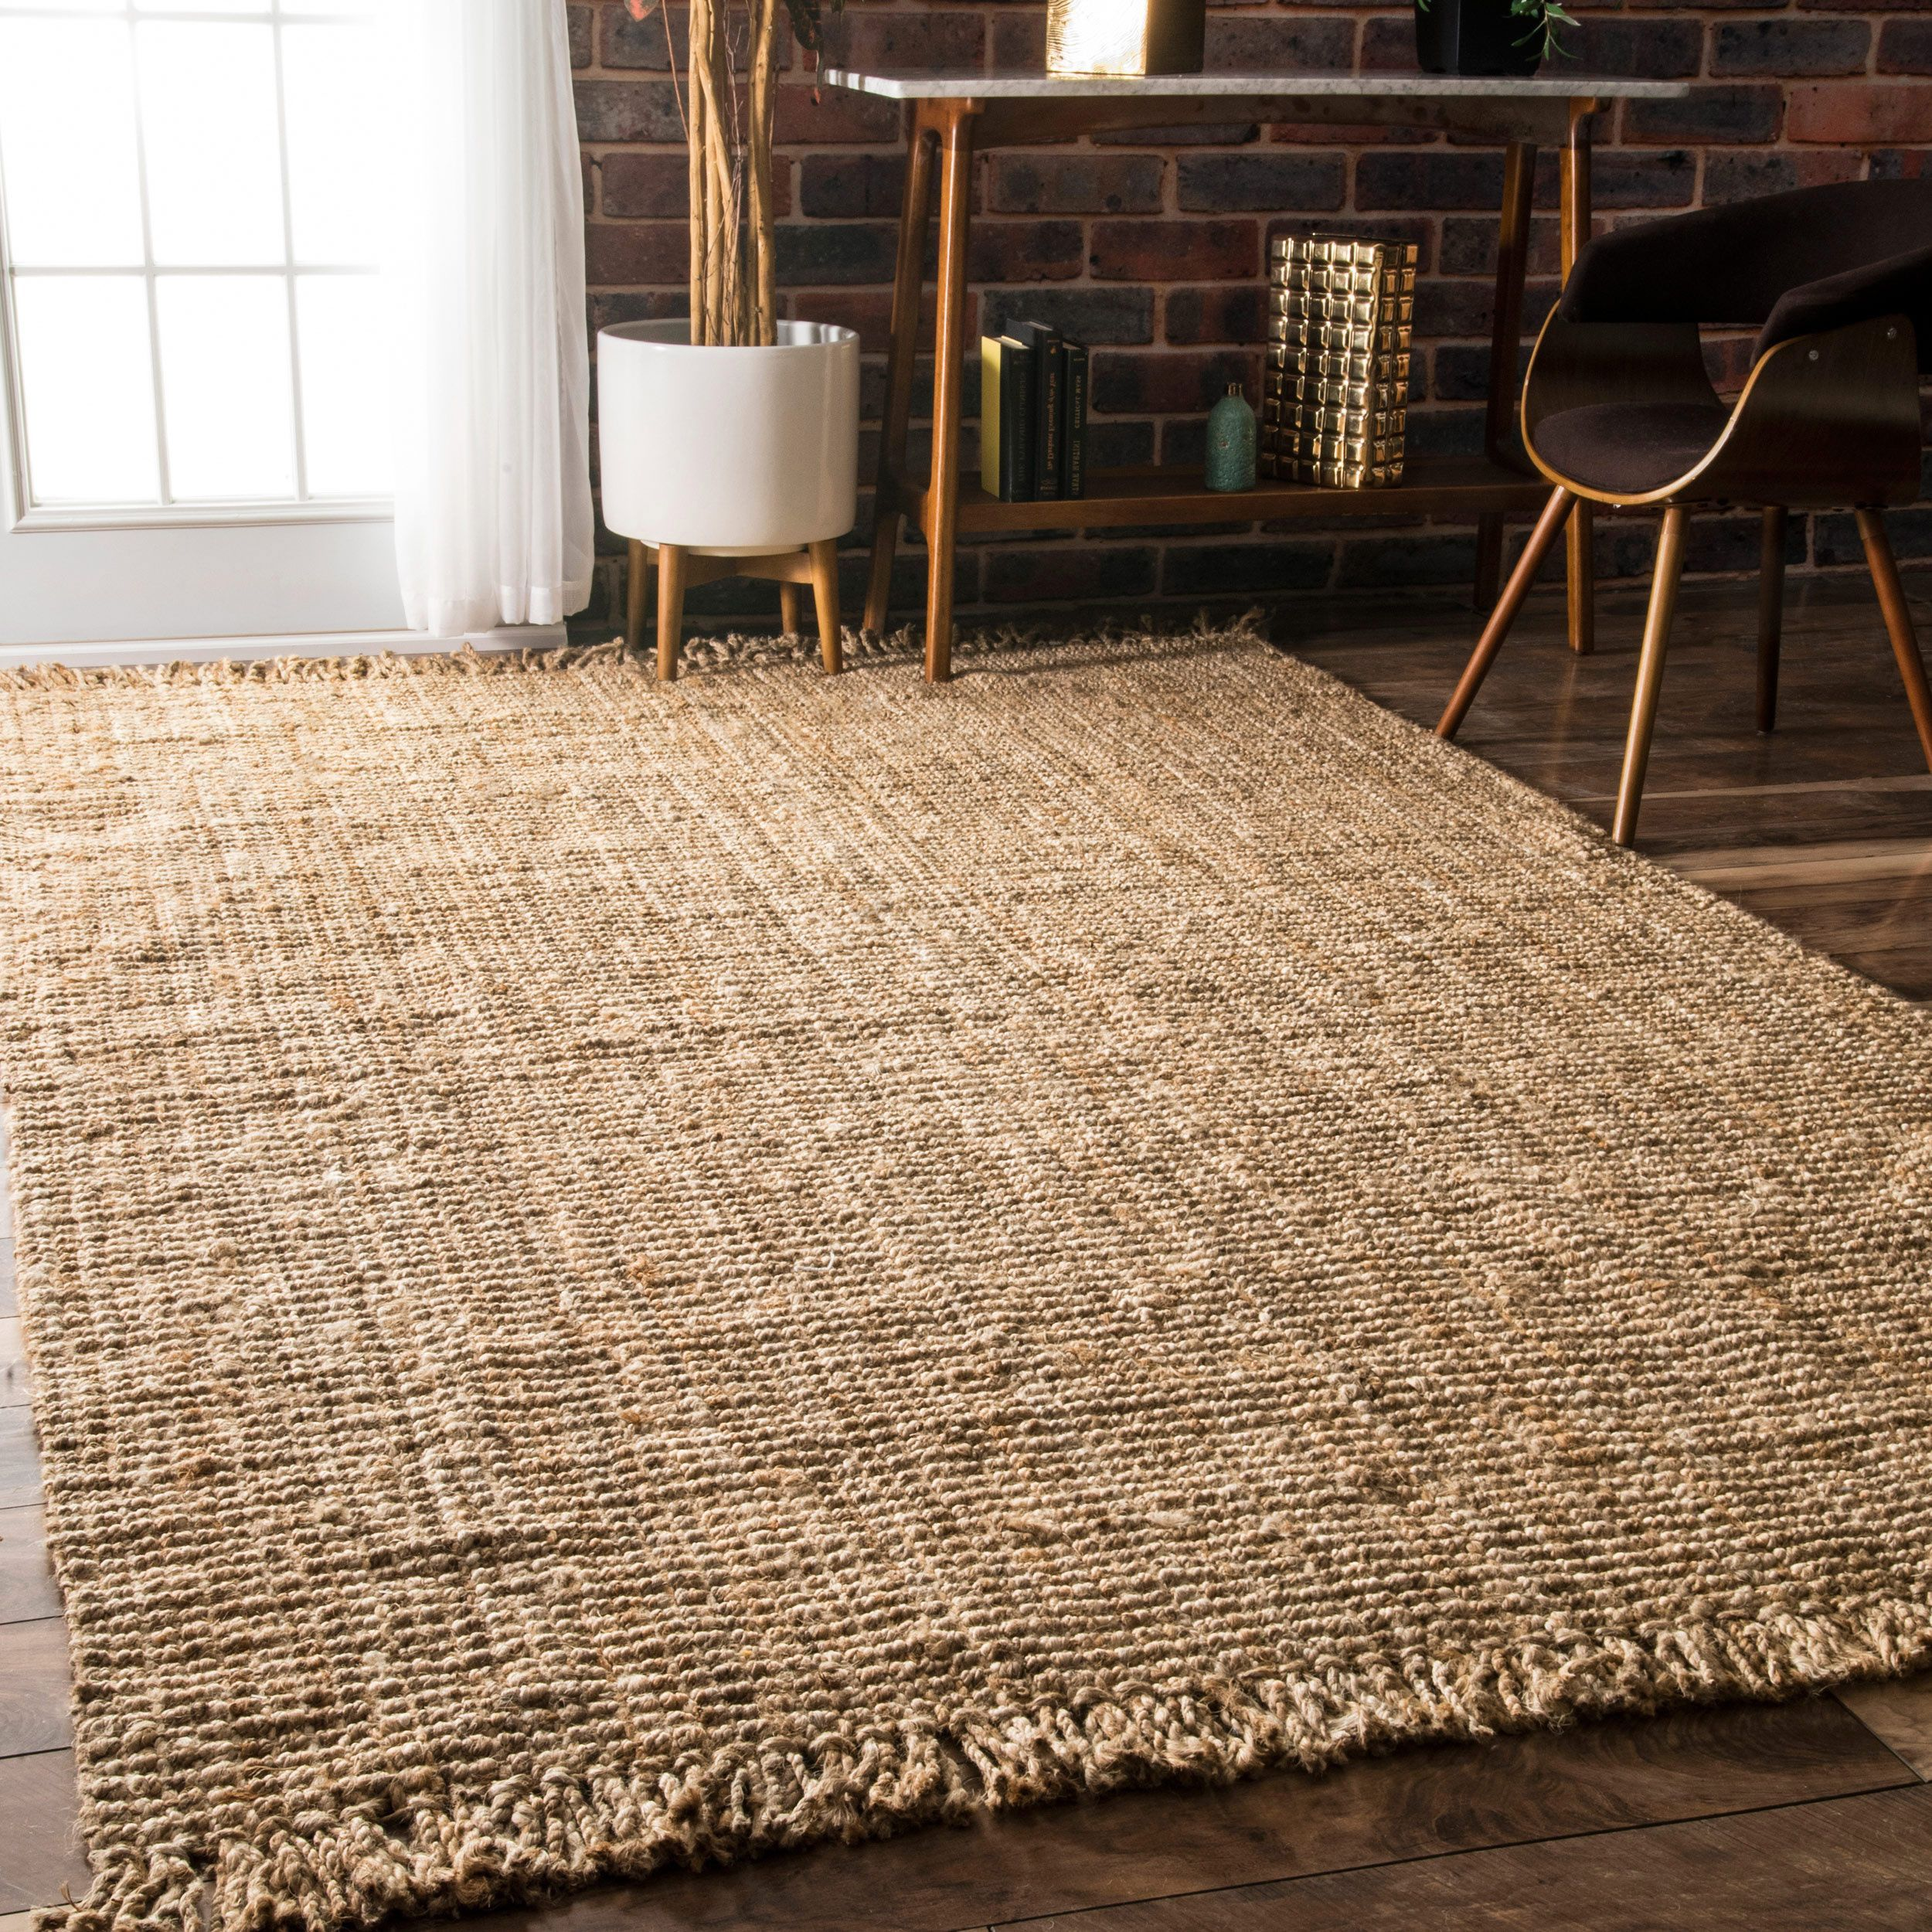 Nuloom Handmade Eco Natural Fiber Chunky Loop Jute Rug 7 6 X 9 Brown